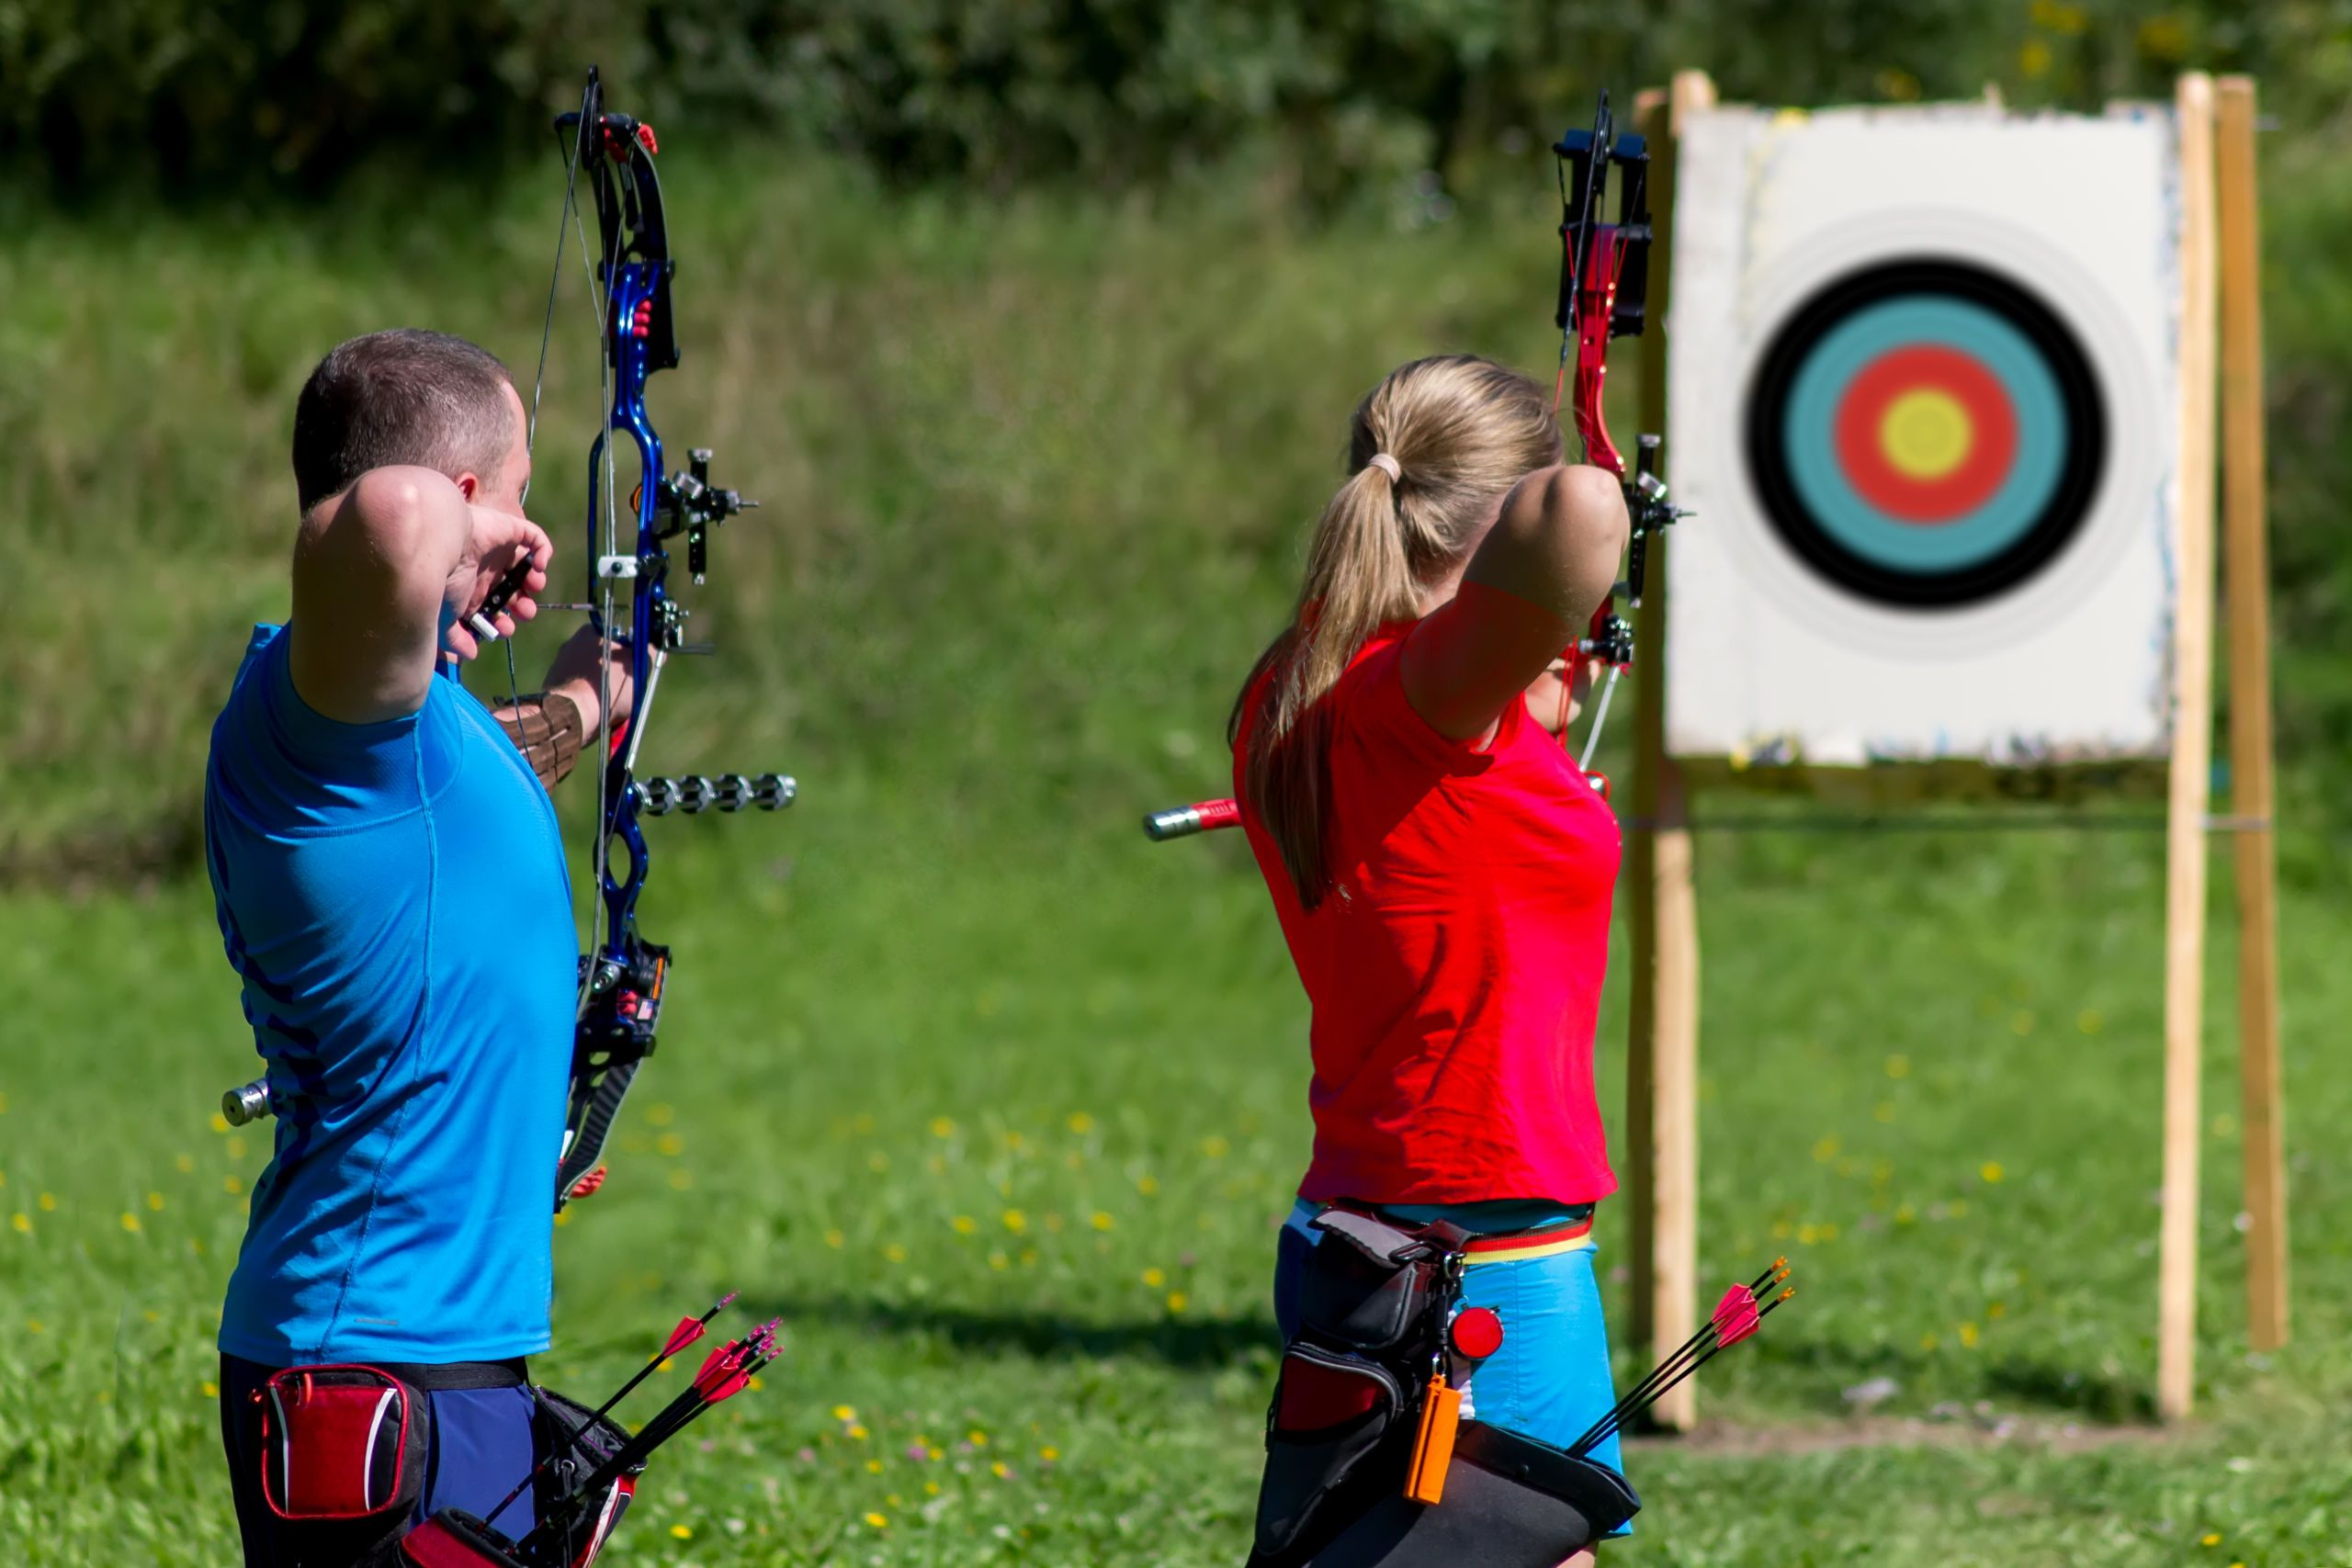 5 facts about archery which help you in your ambition and career